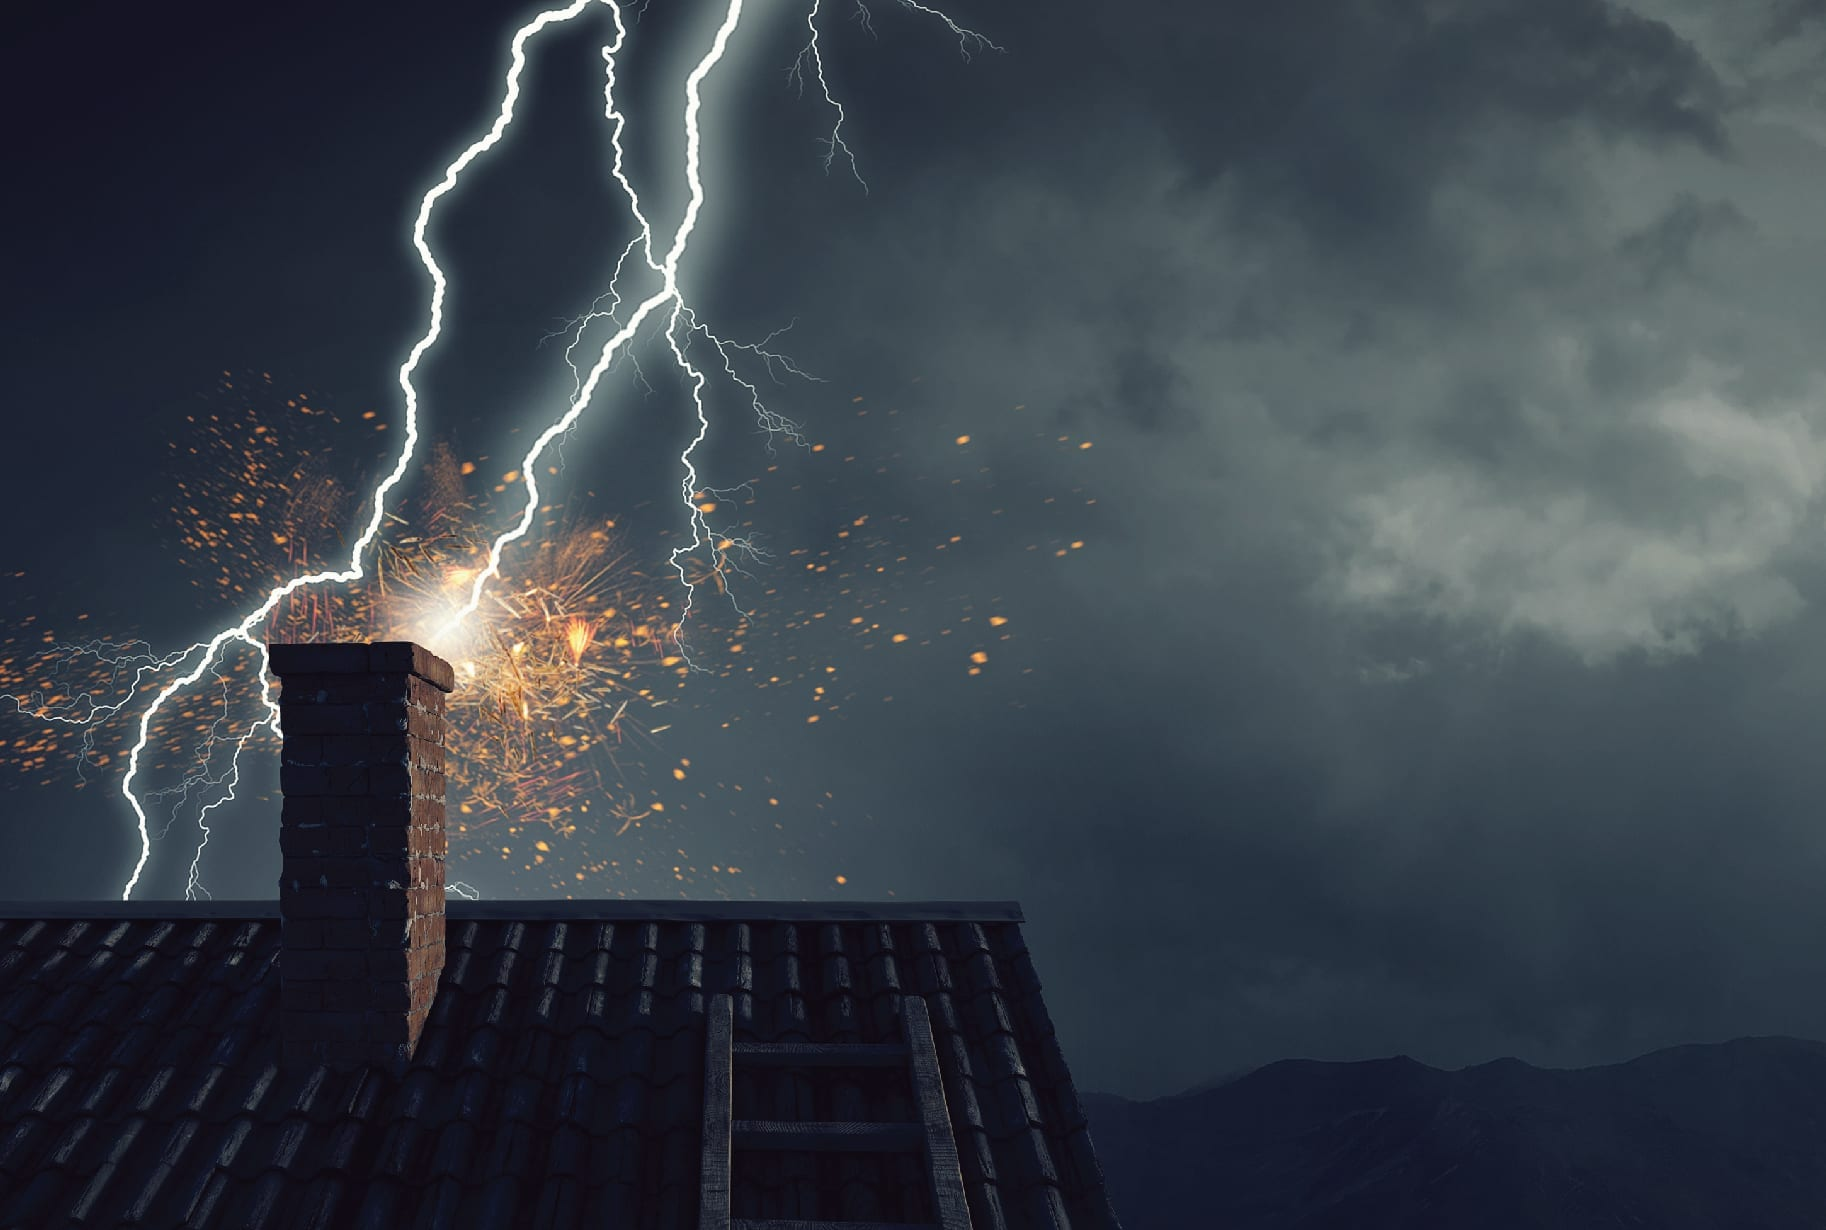 Lightning striking a home without residential lightning protection.